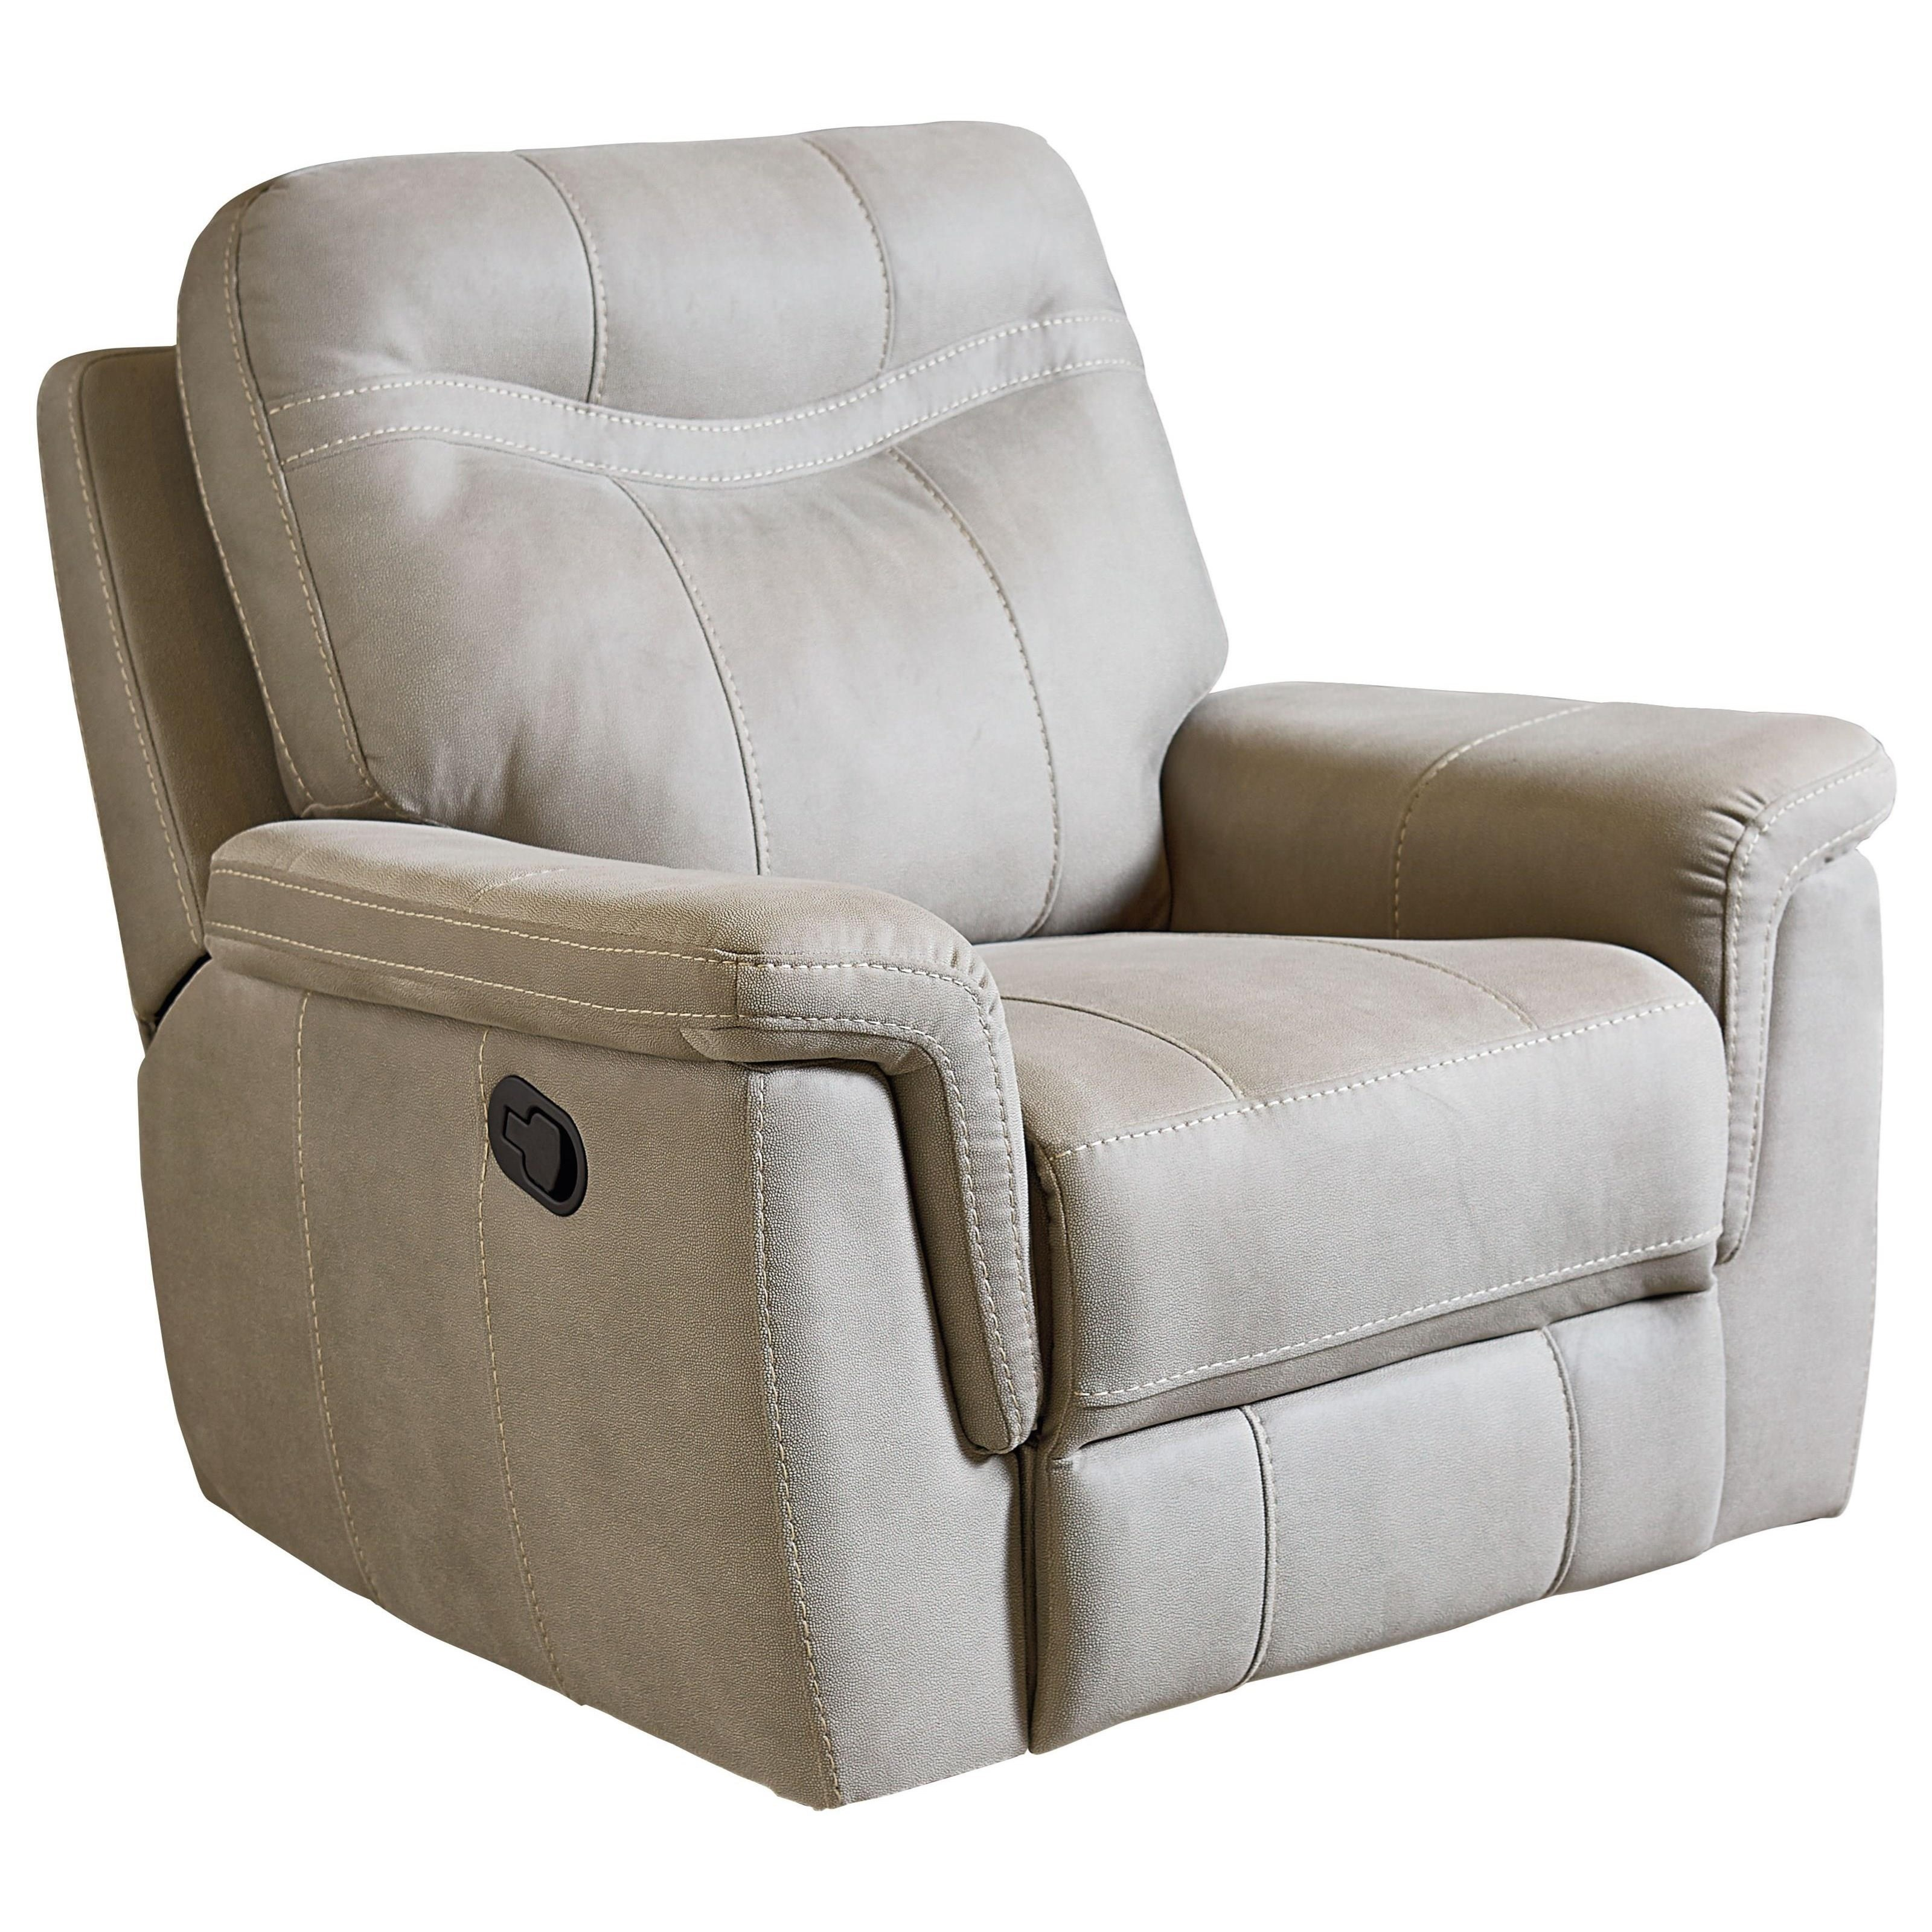 Rocking recliner chairs - Standard Furniture Boardwalk Rocker Recliner Item Number 4017981